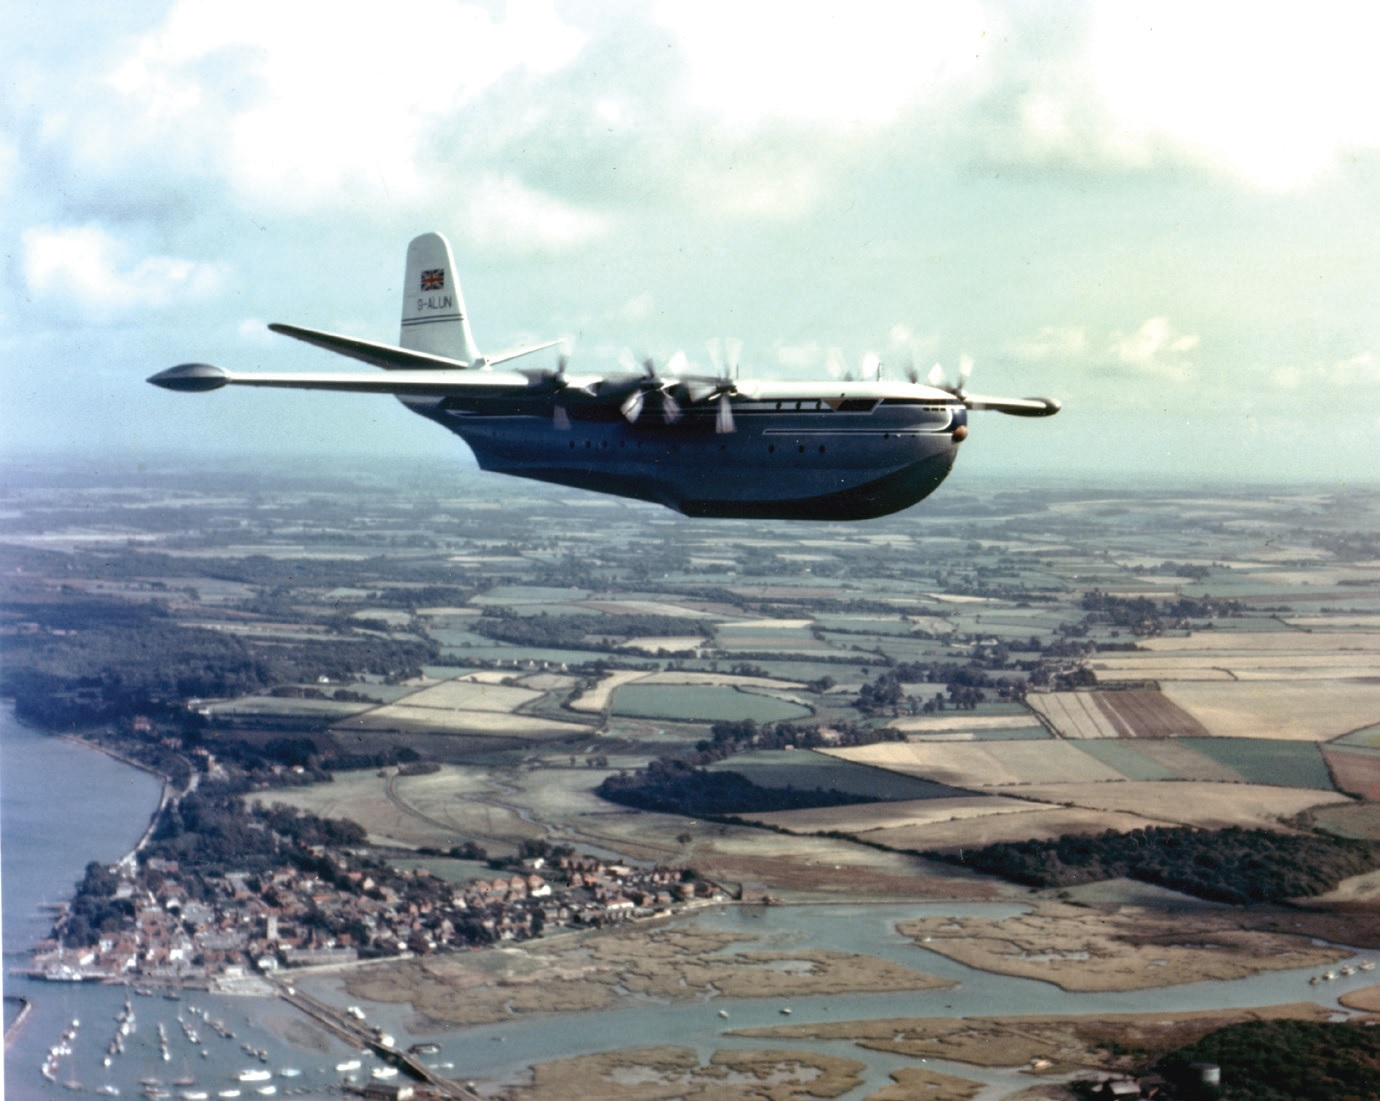 in_1952_the_saunders_roe_princess_becomes_the_largest_all-metal_flying_boat_in_the_world.jpg